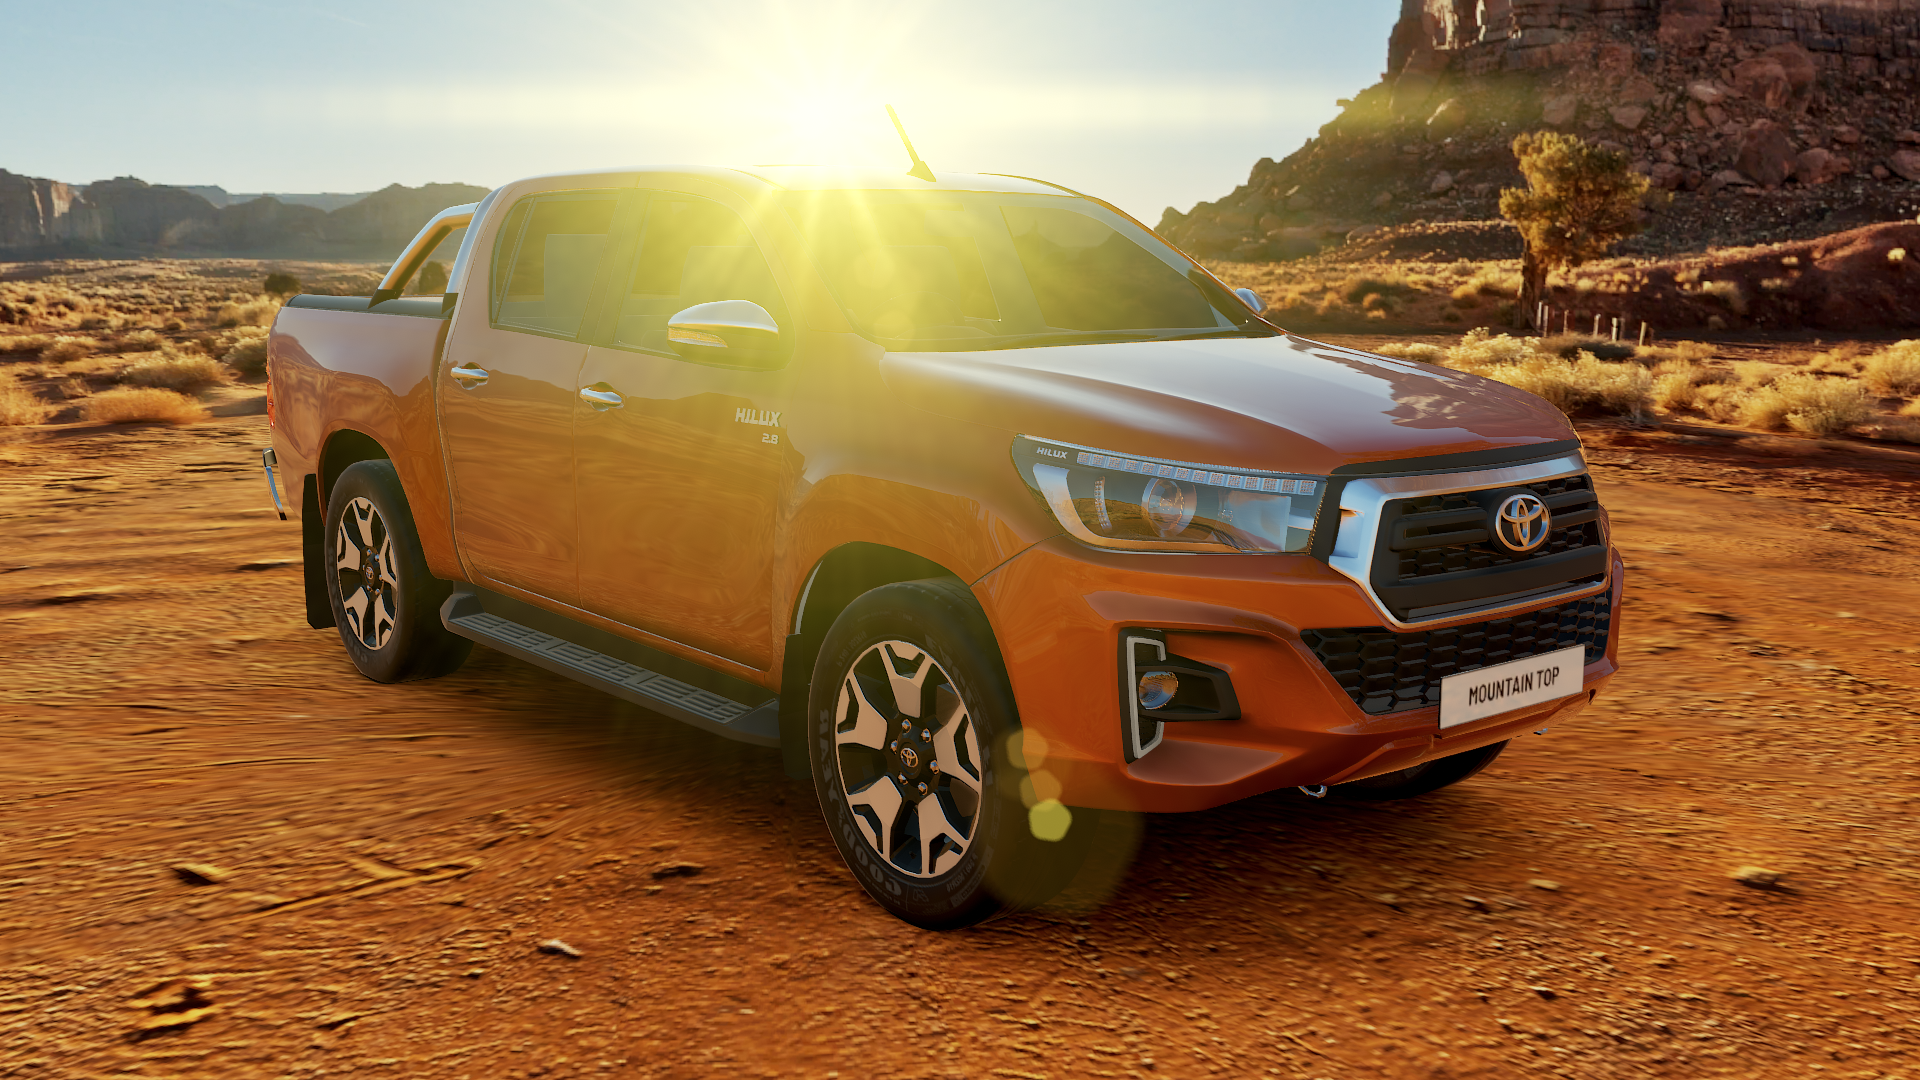 Mountain Top pickup truck accessories enginered for the outback